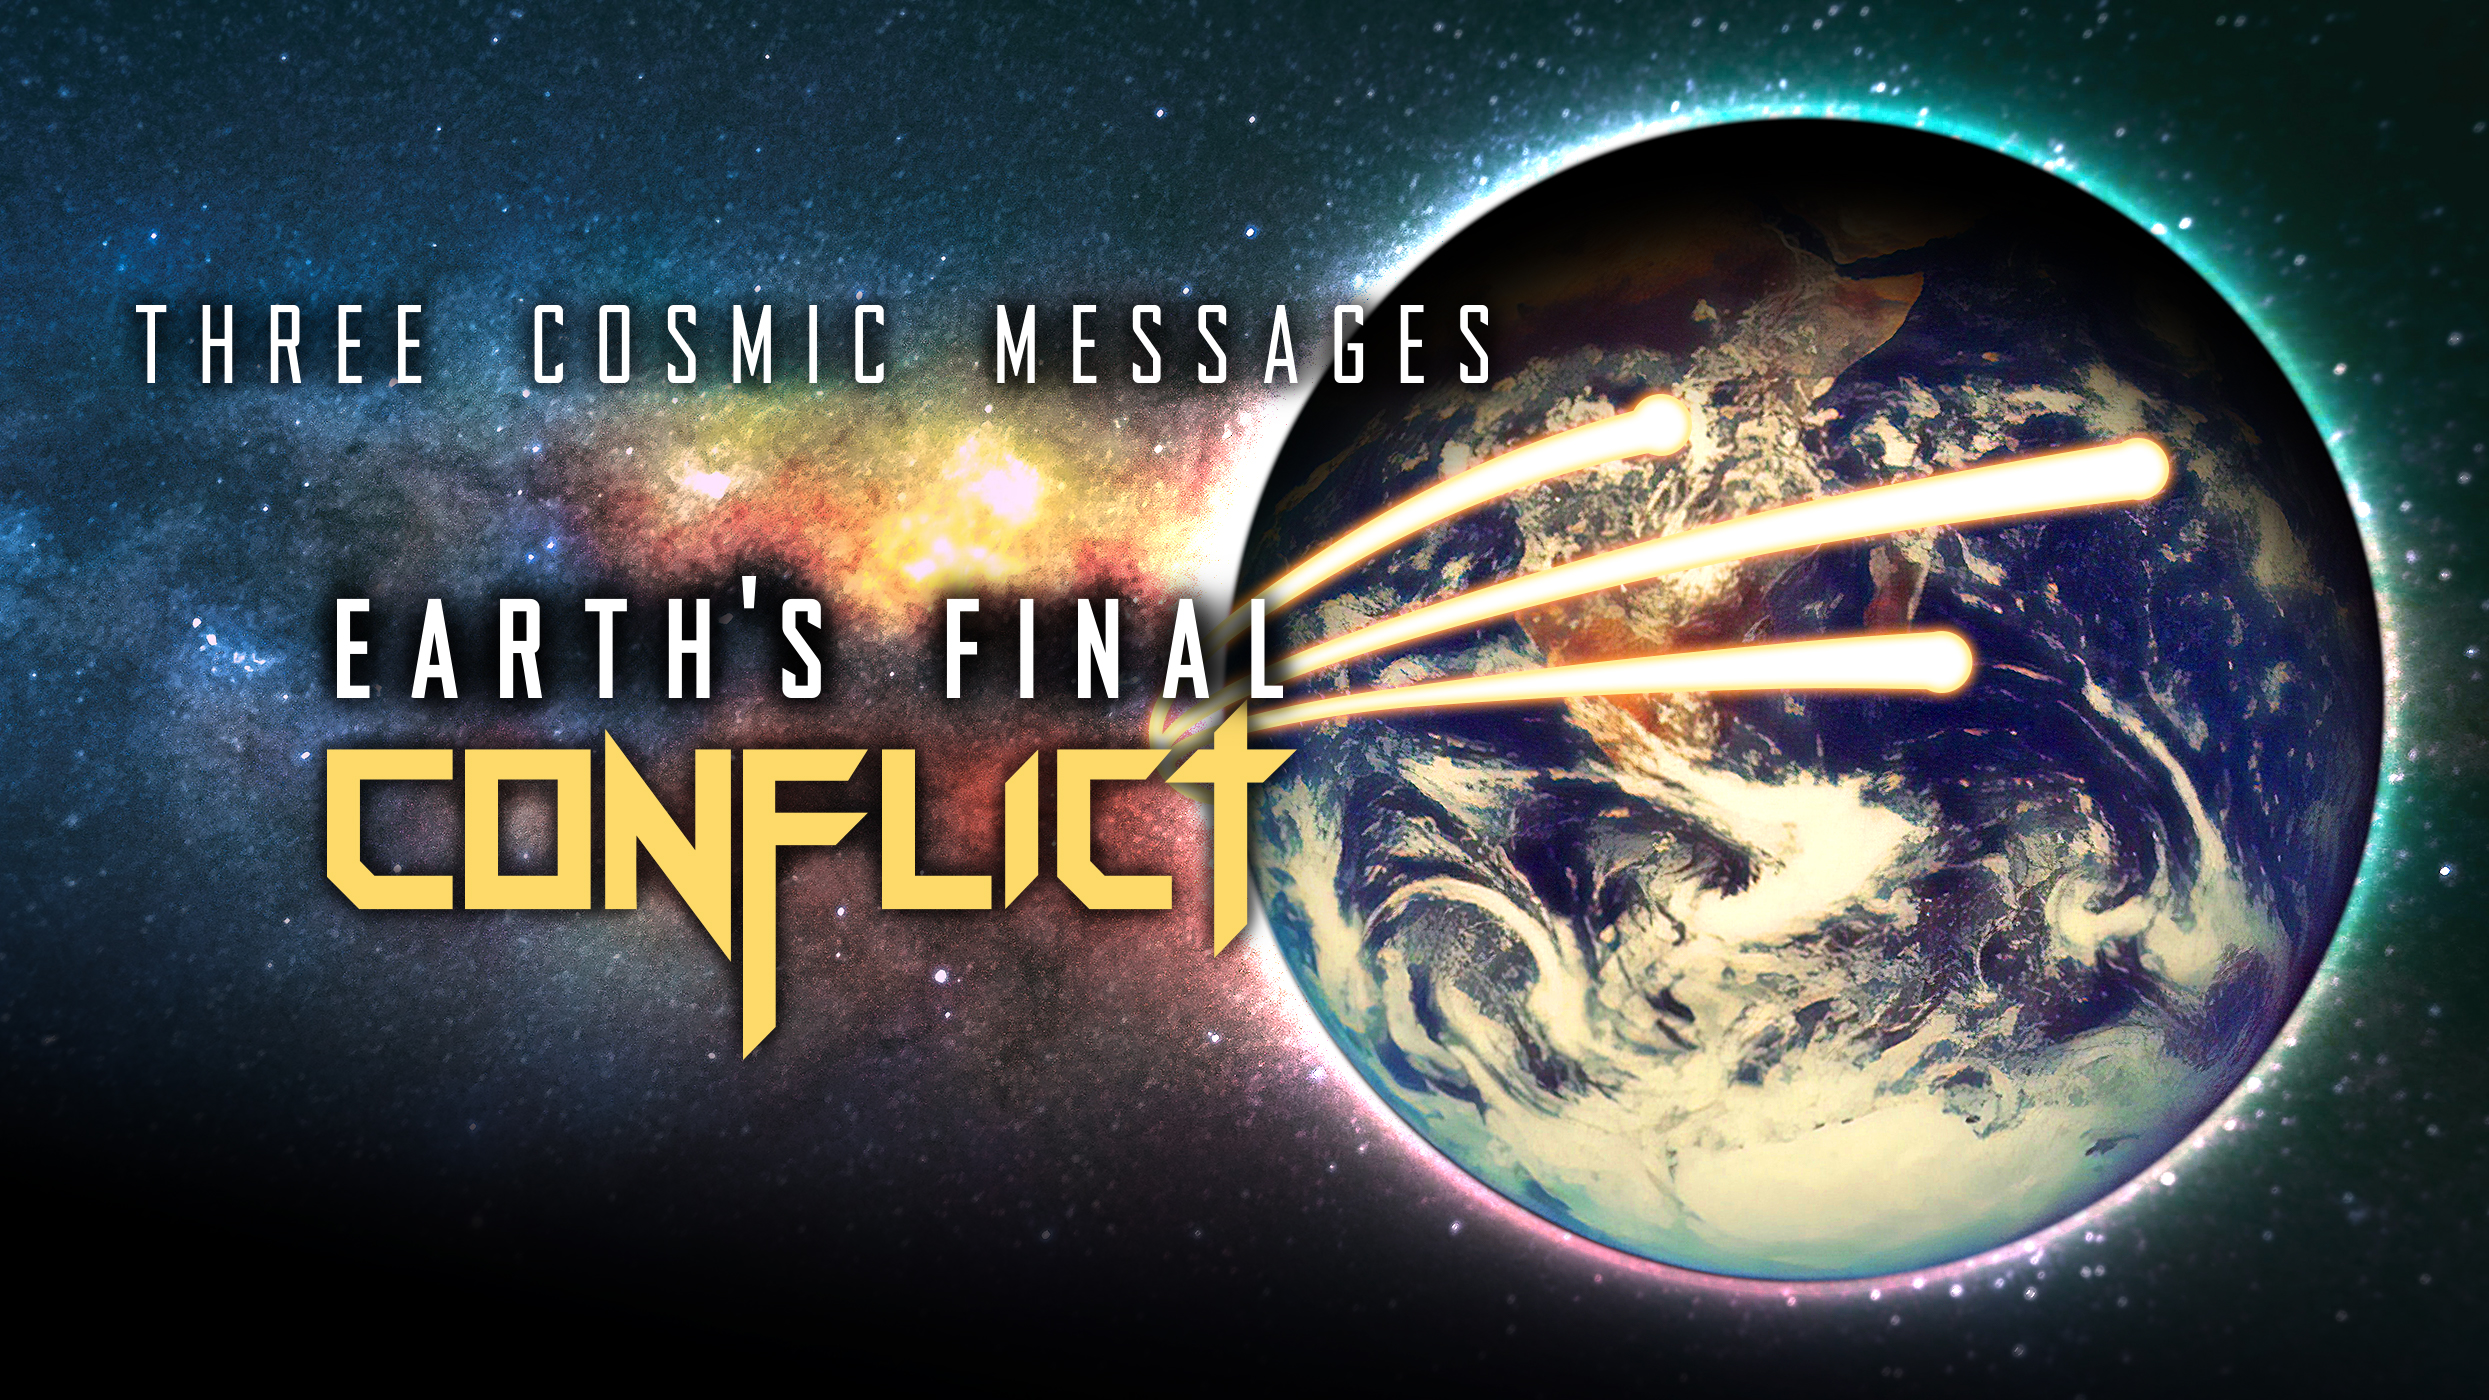 Three Cosmic Messages Earth's Final Conflict